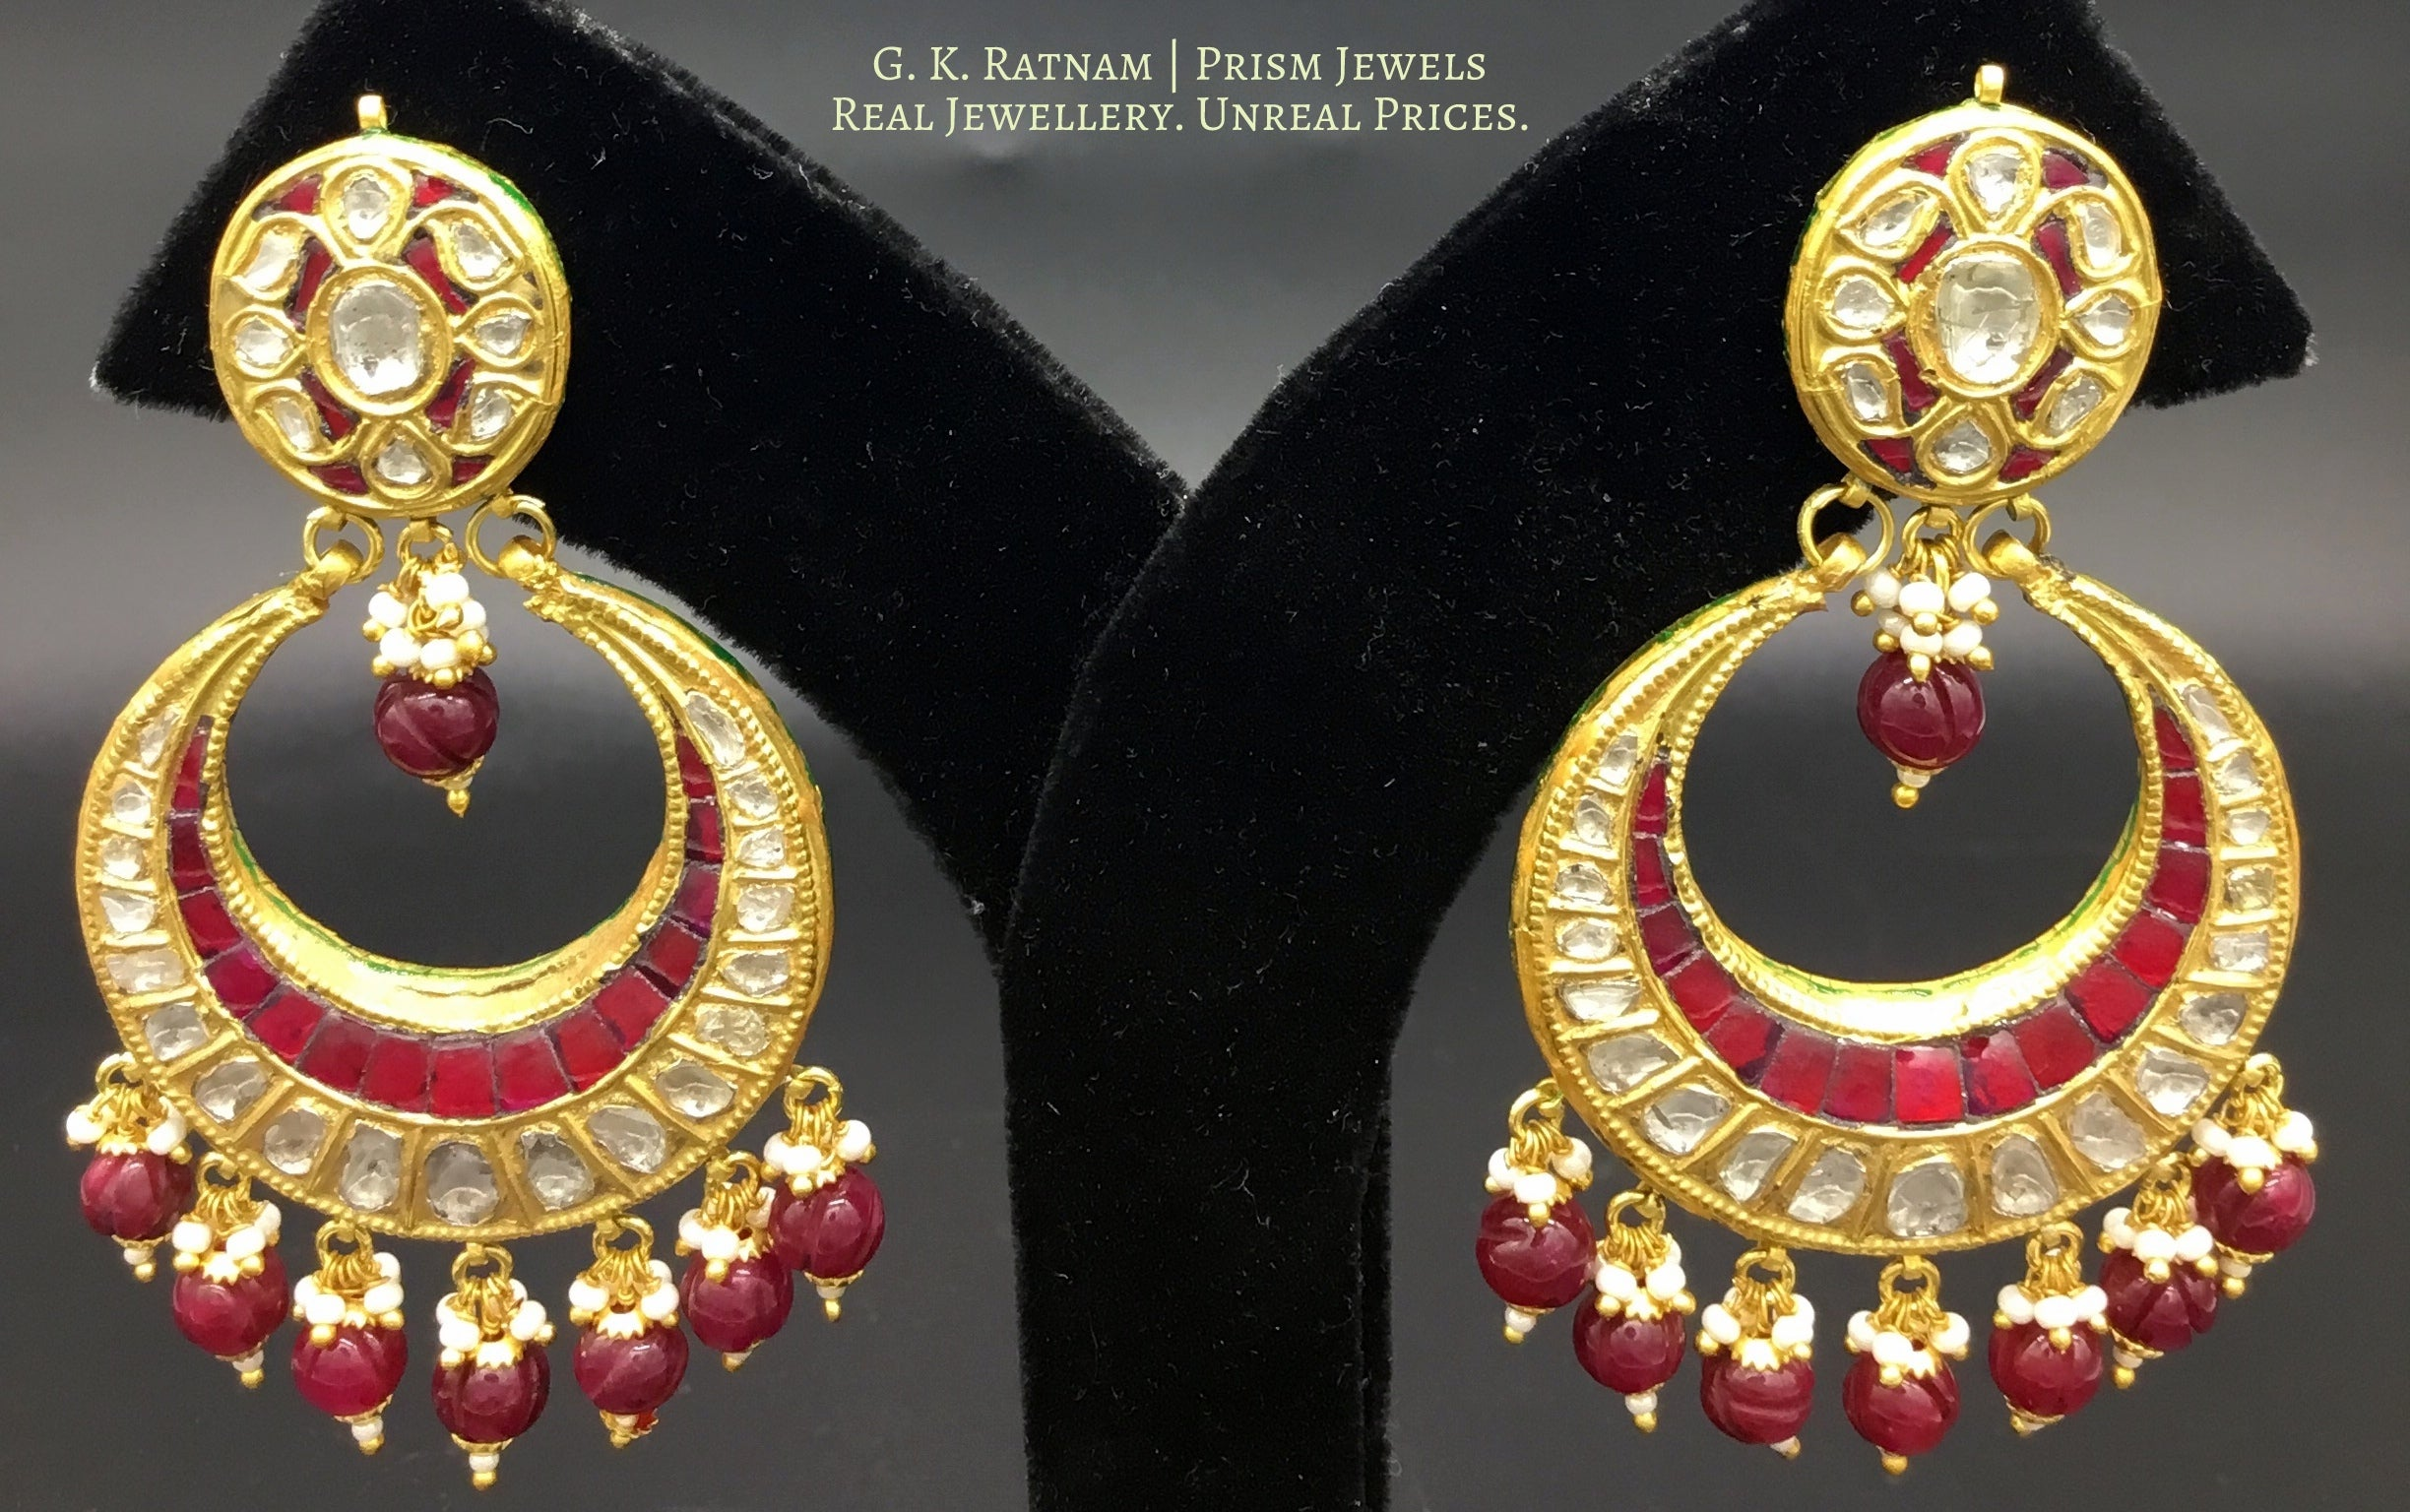 23k Gold and Diamond Polki Chand Bali Earring pair with round ruby-red beads - gold diamond polki kundan meena jadau jewellery